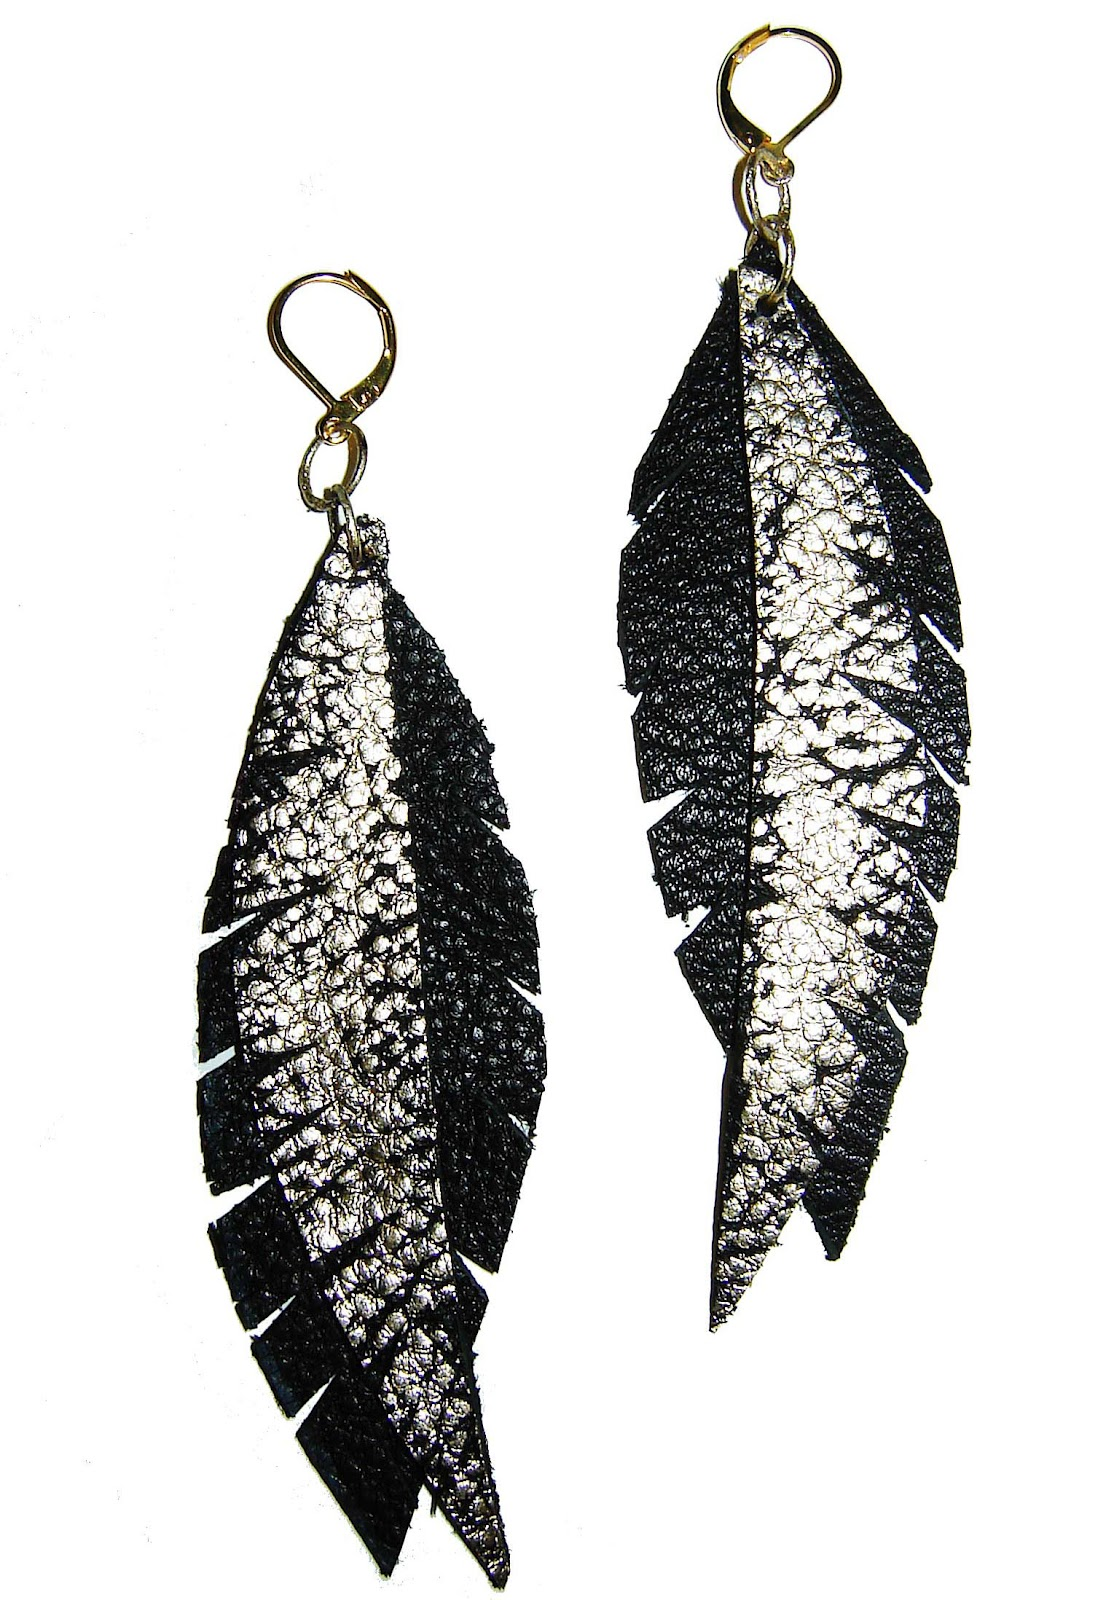 Lush Leathers How To Make Leather Earrings